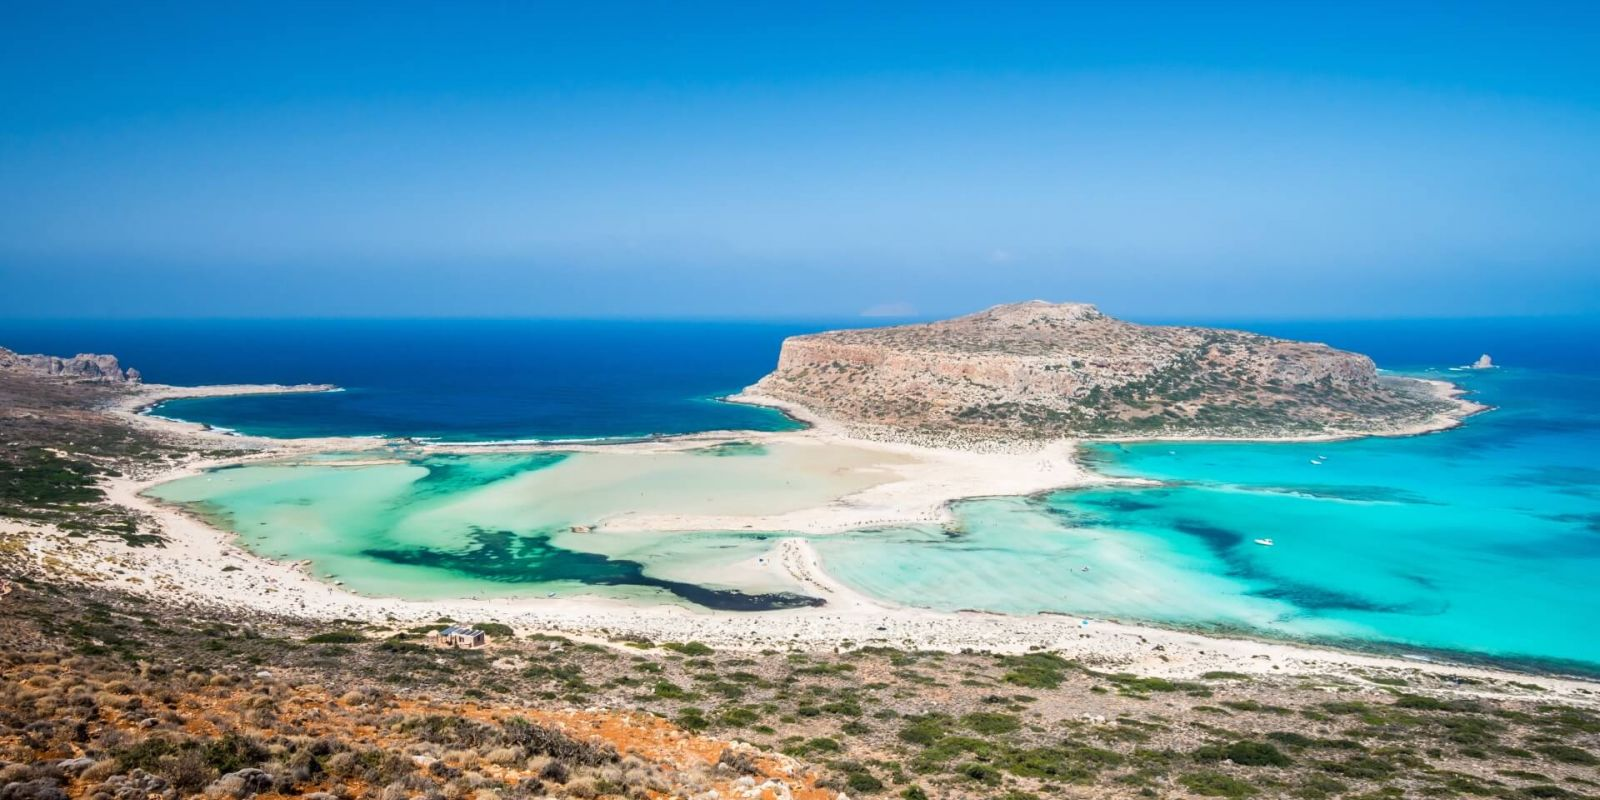 https://www.talamare.com/medias/The bay of Balos and its turquoise lagoon on the island of Crete during a Greece yacht charter